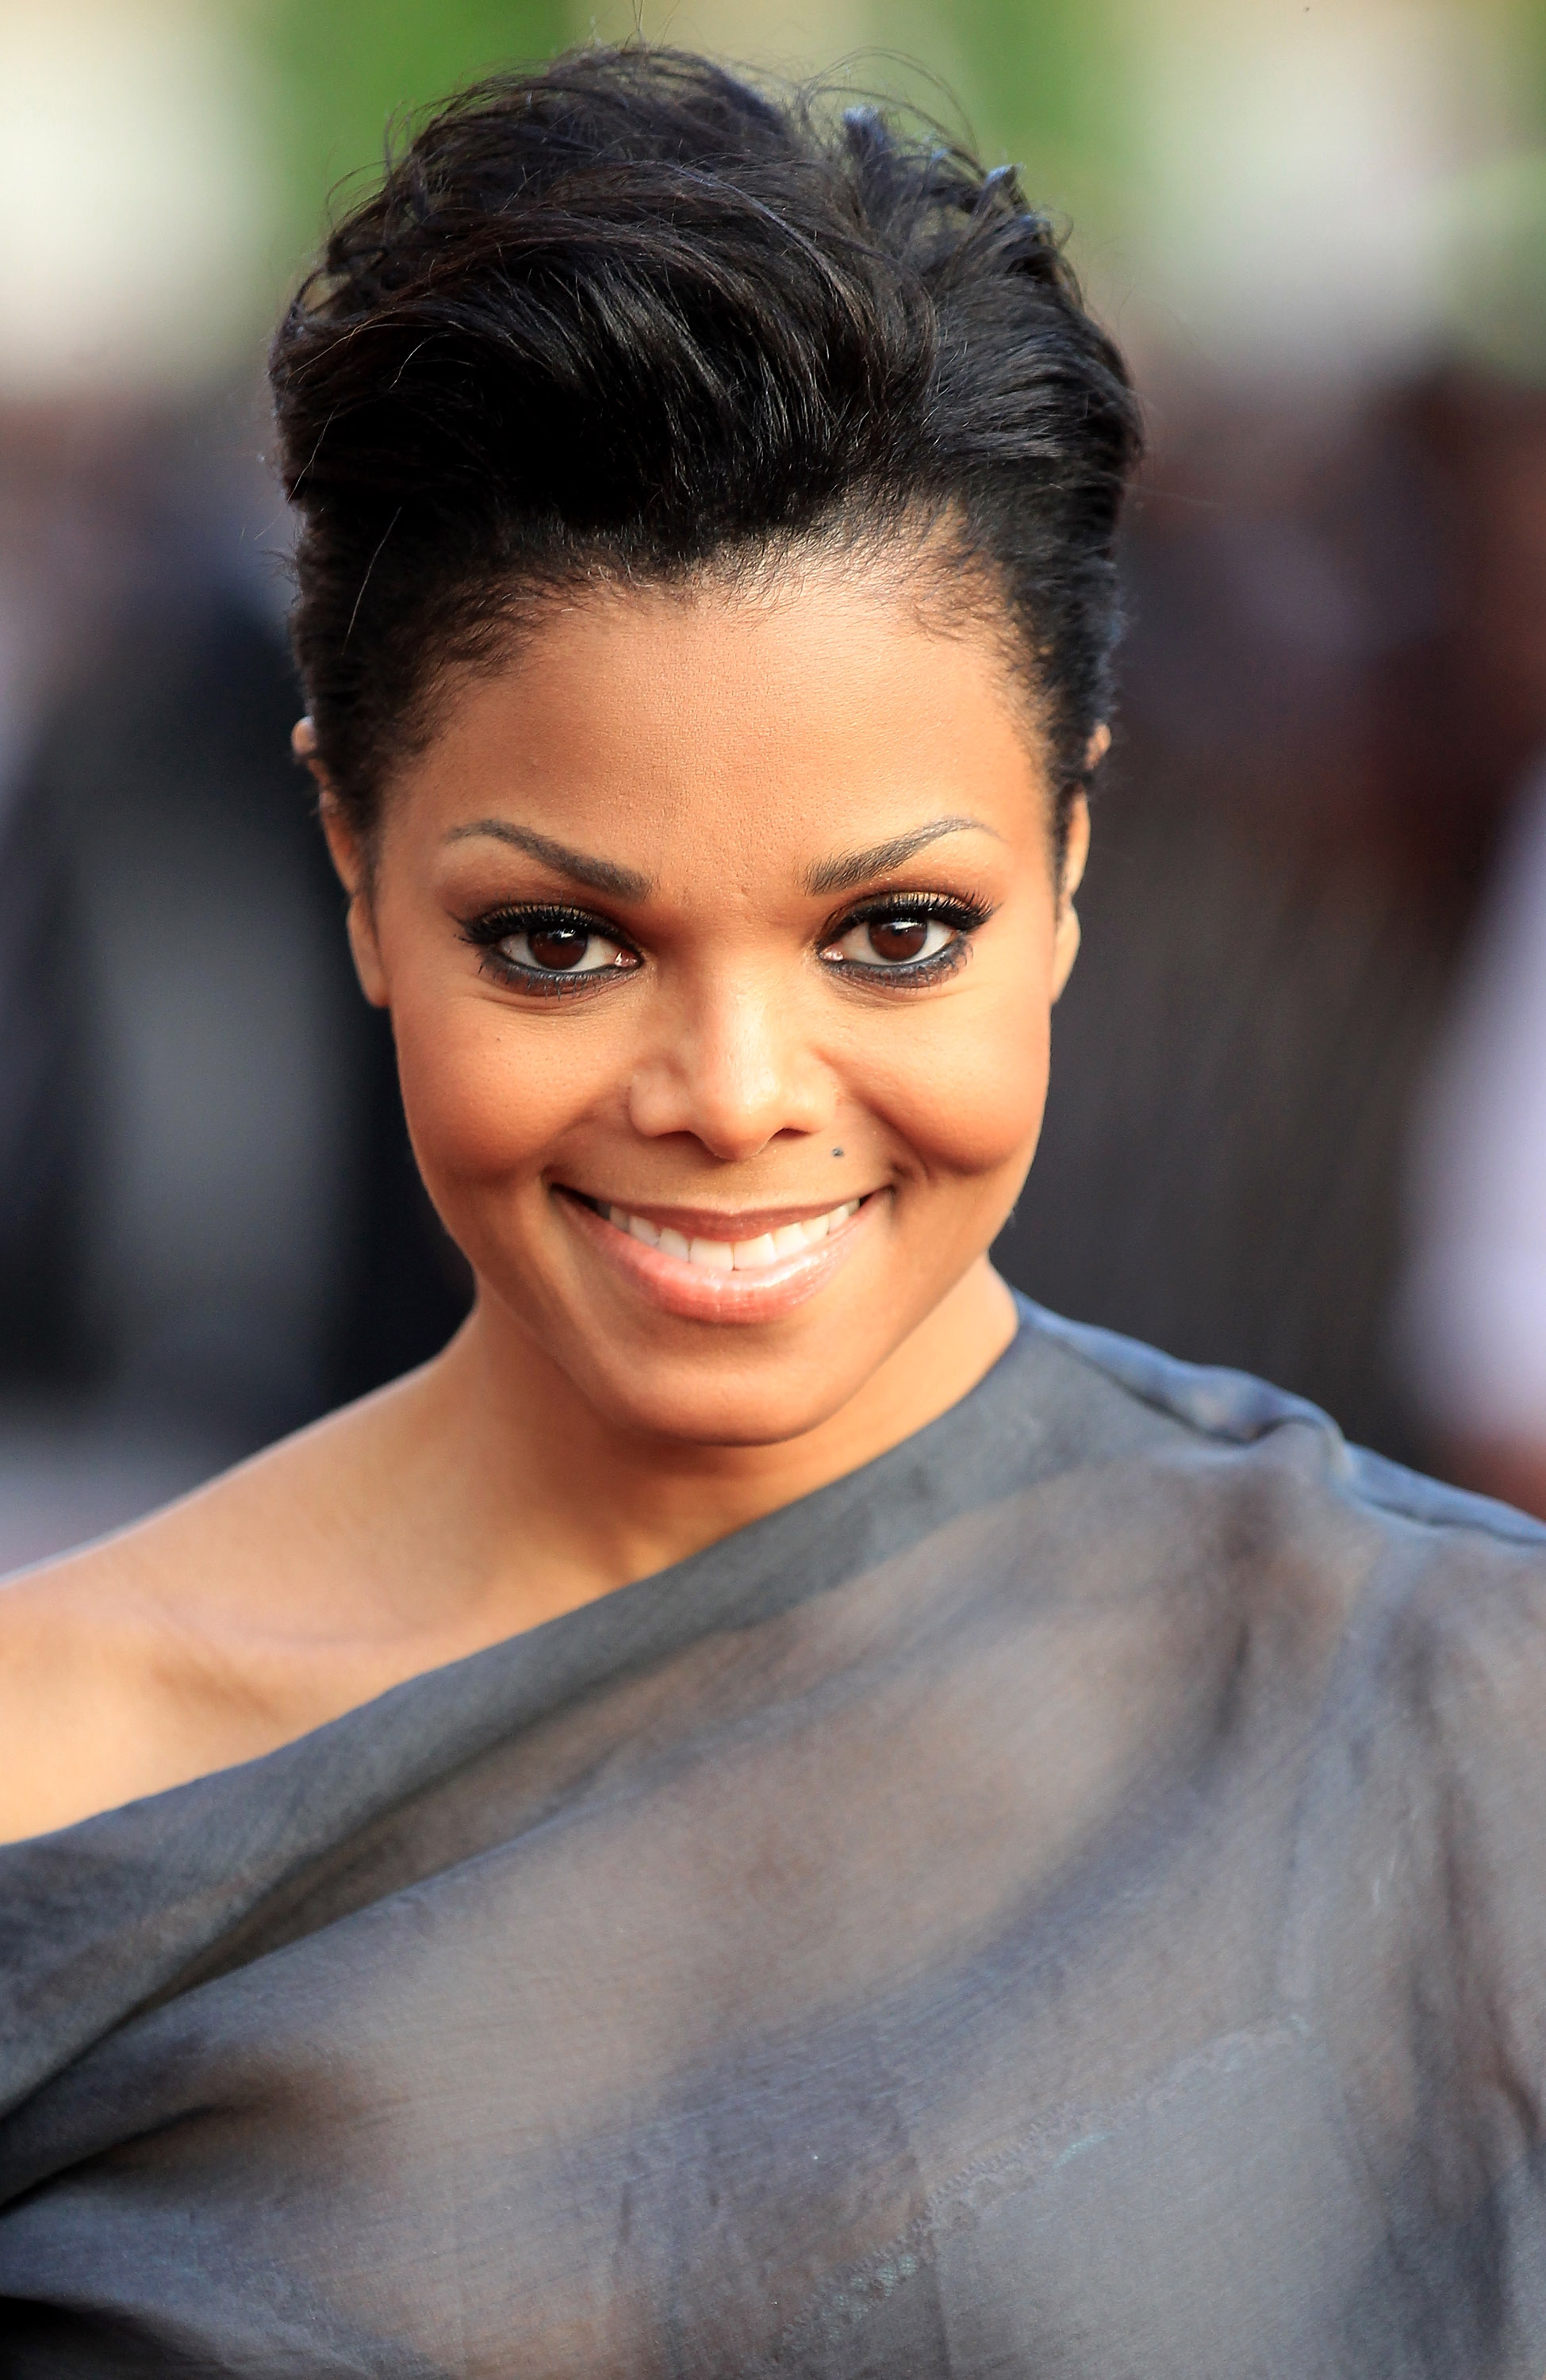 Miraculous 45 Black Hairstyles For Short Hair Short Haircuts For Black Women Hairstyle Inspiration Daily Dogsangcom